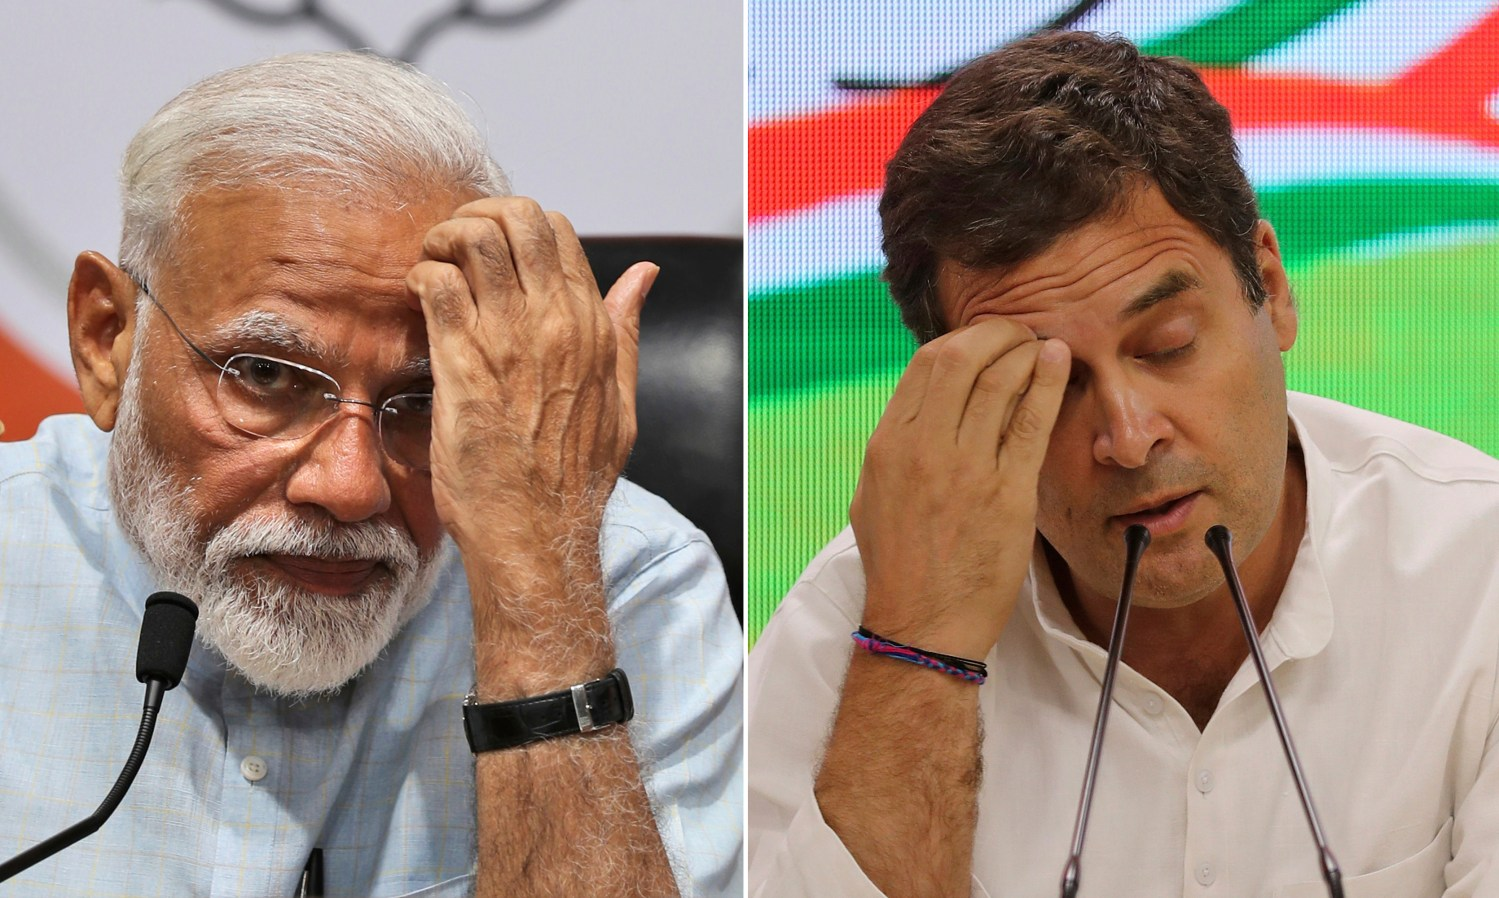 India's election ends this week. And at least one political party is spreading hoaxes about voter fraud.